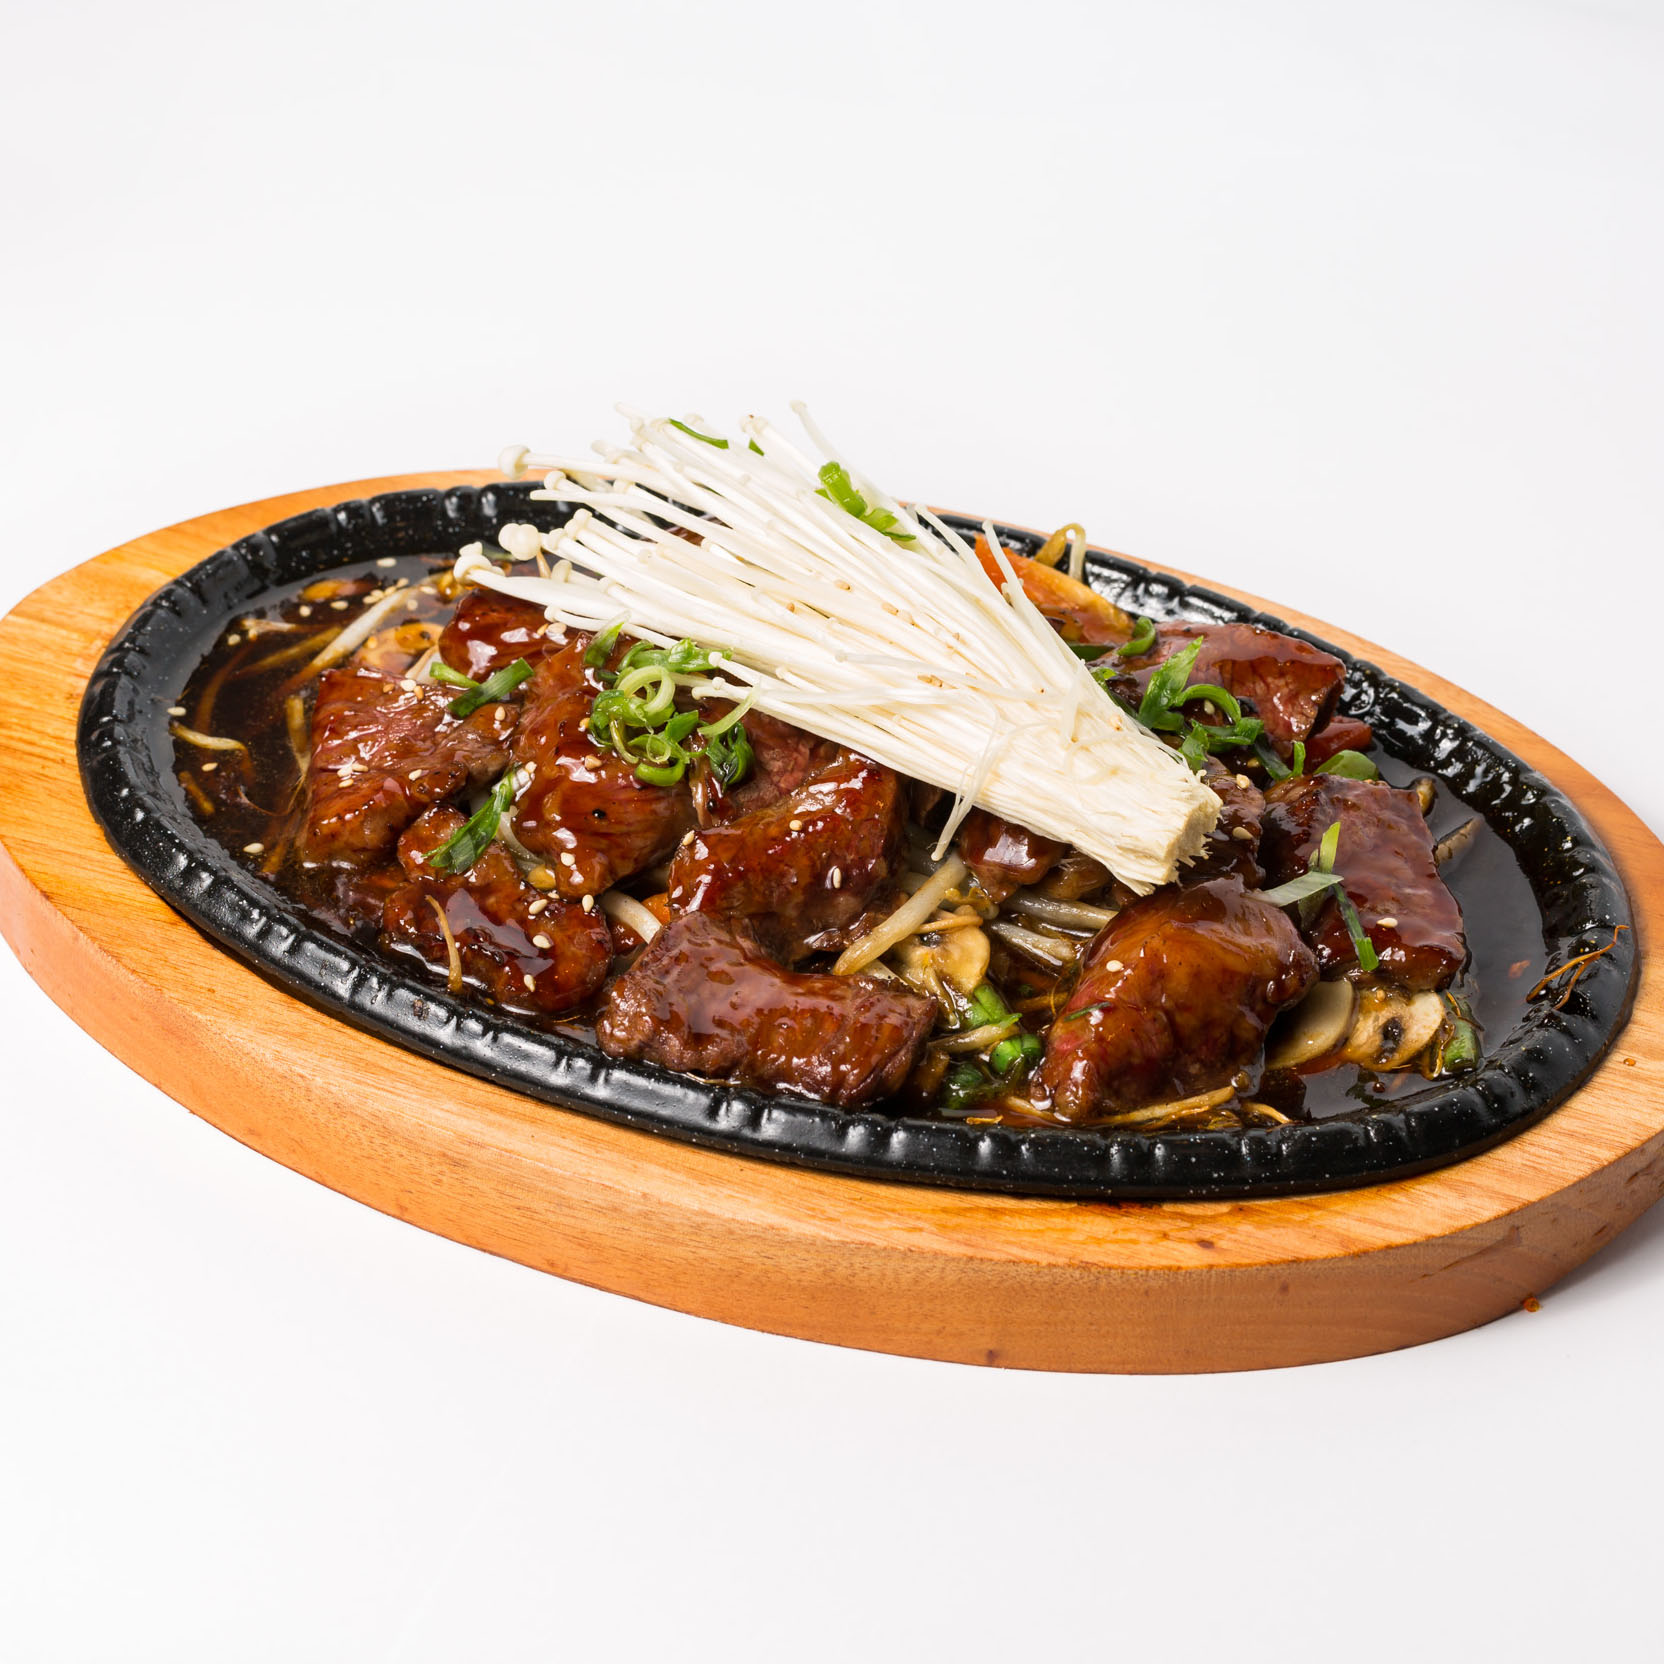 Wagyu Beef with Teriyaki Sauce